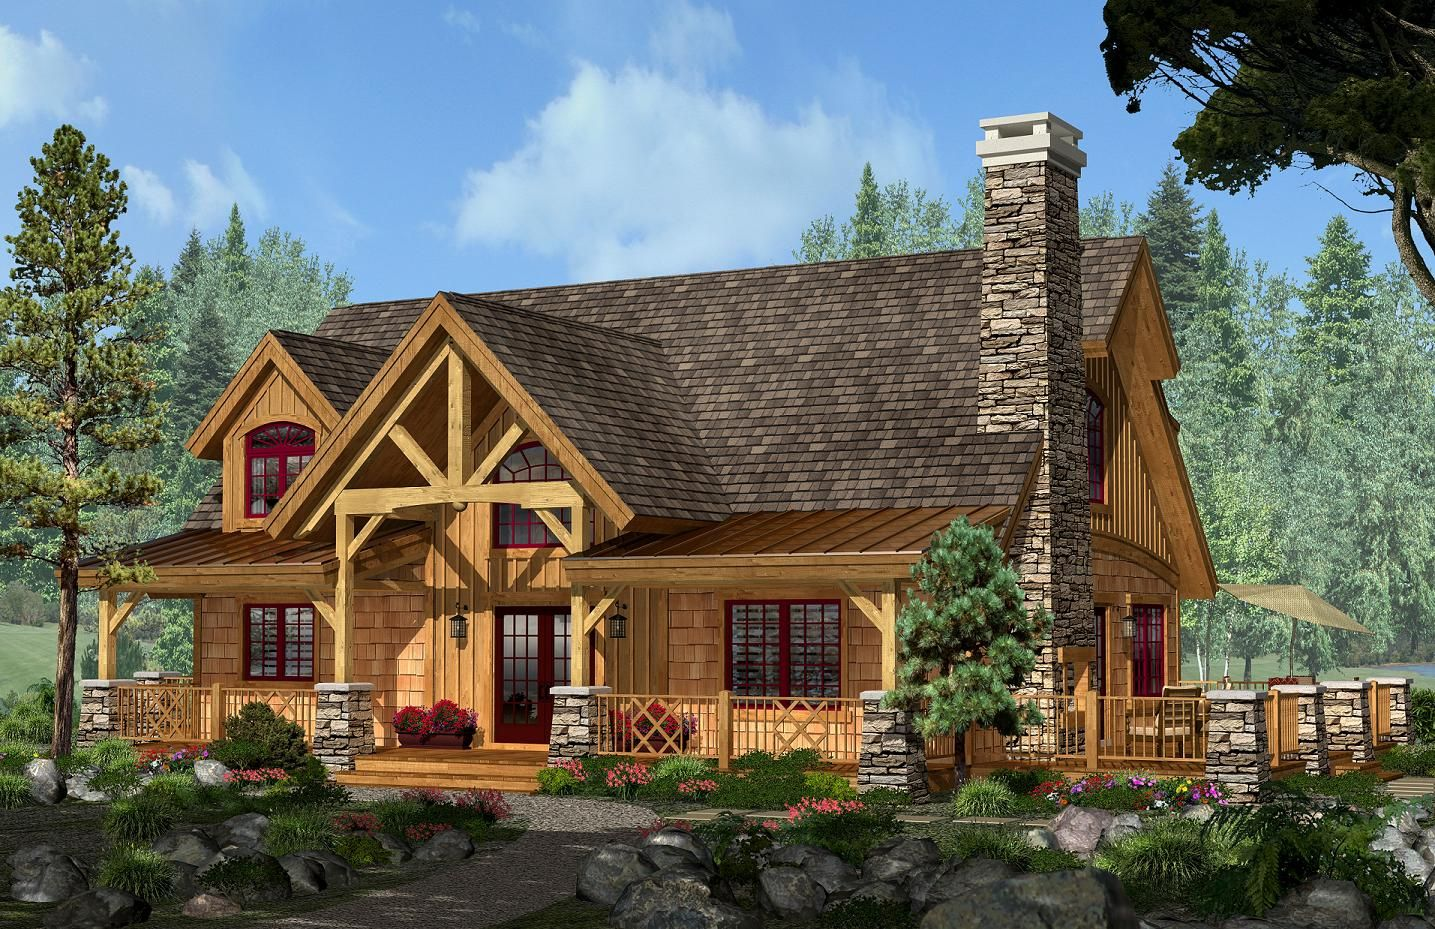 Adirondack cottage from the adirondack series elevation for Adirondack cabin builders